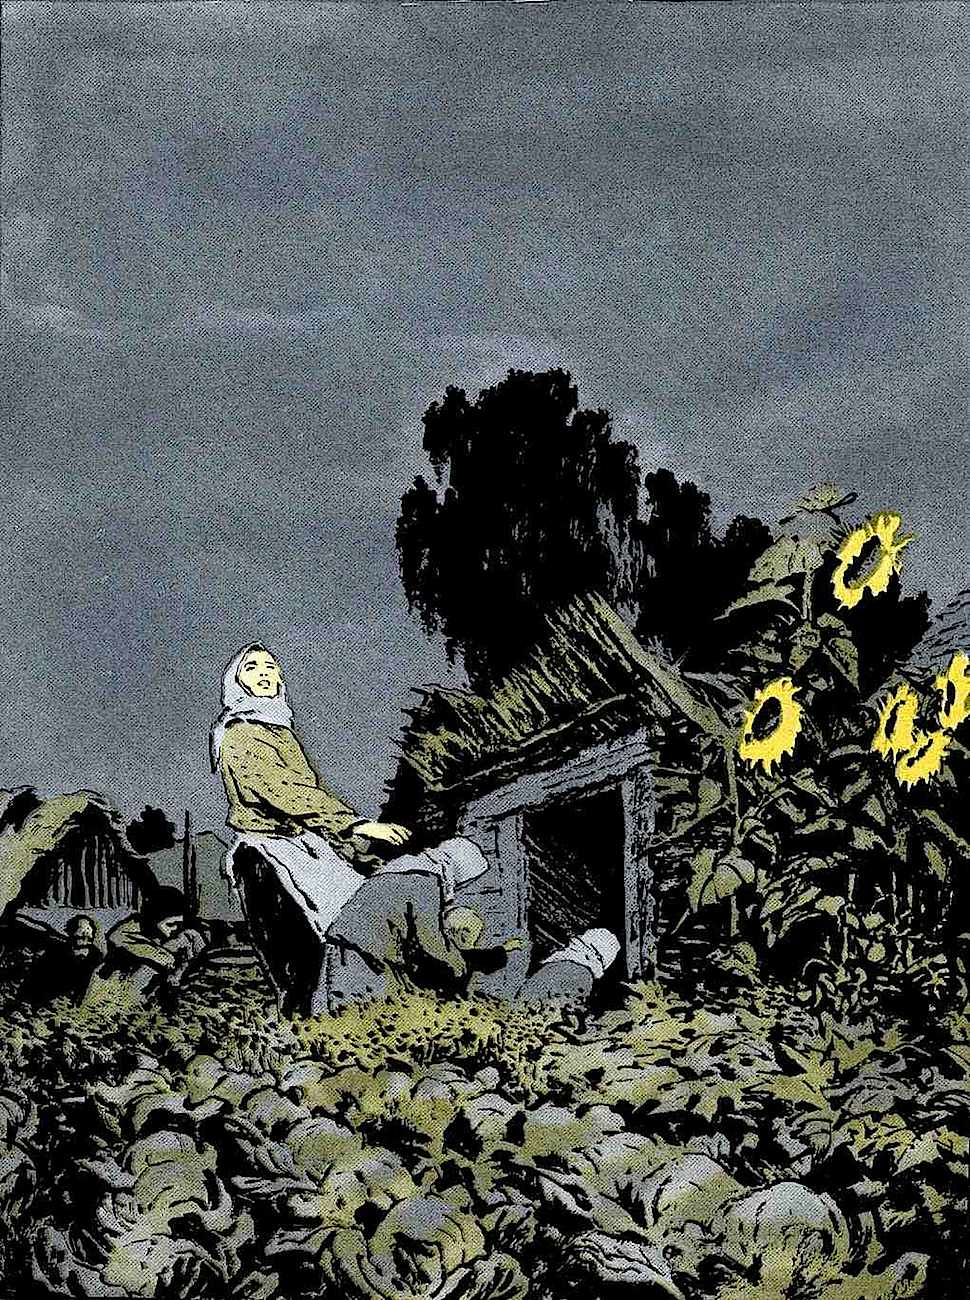 a 1959 Russian illustration, shelter from the gathering storm